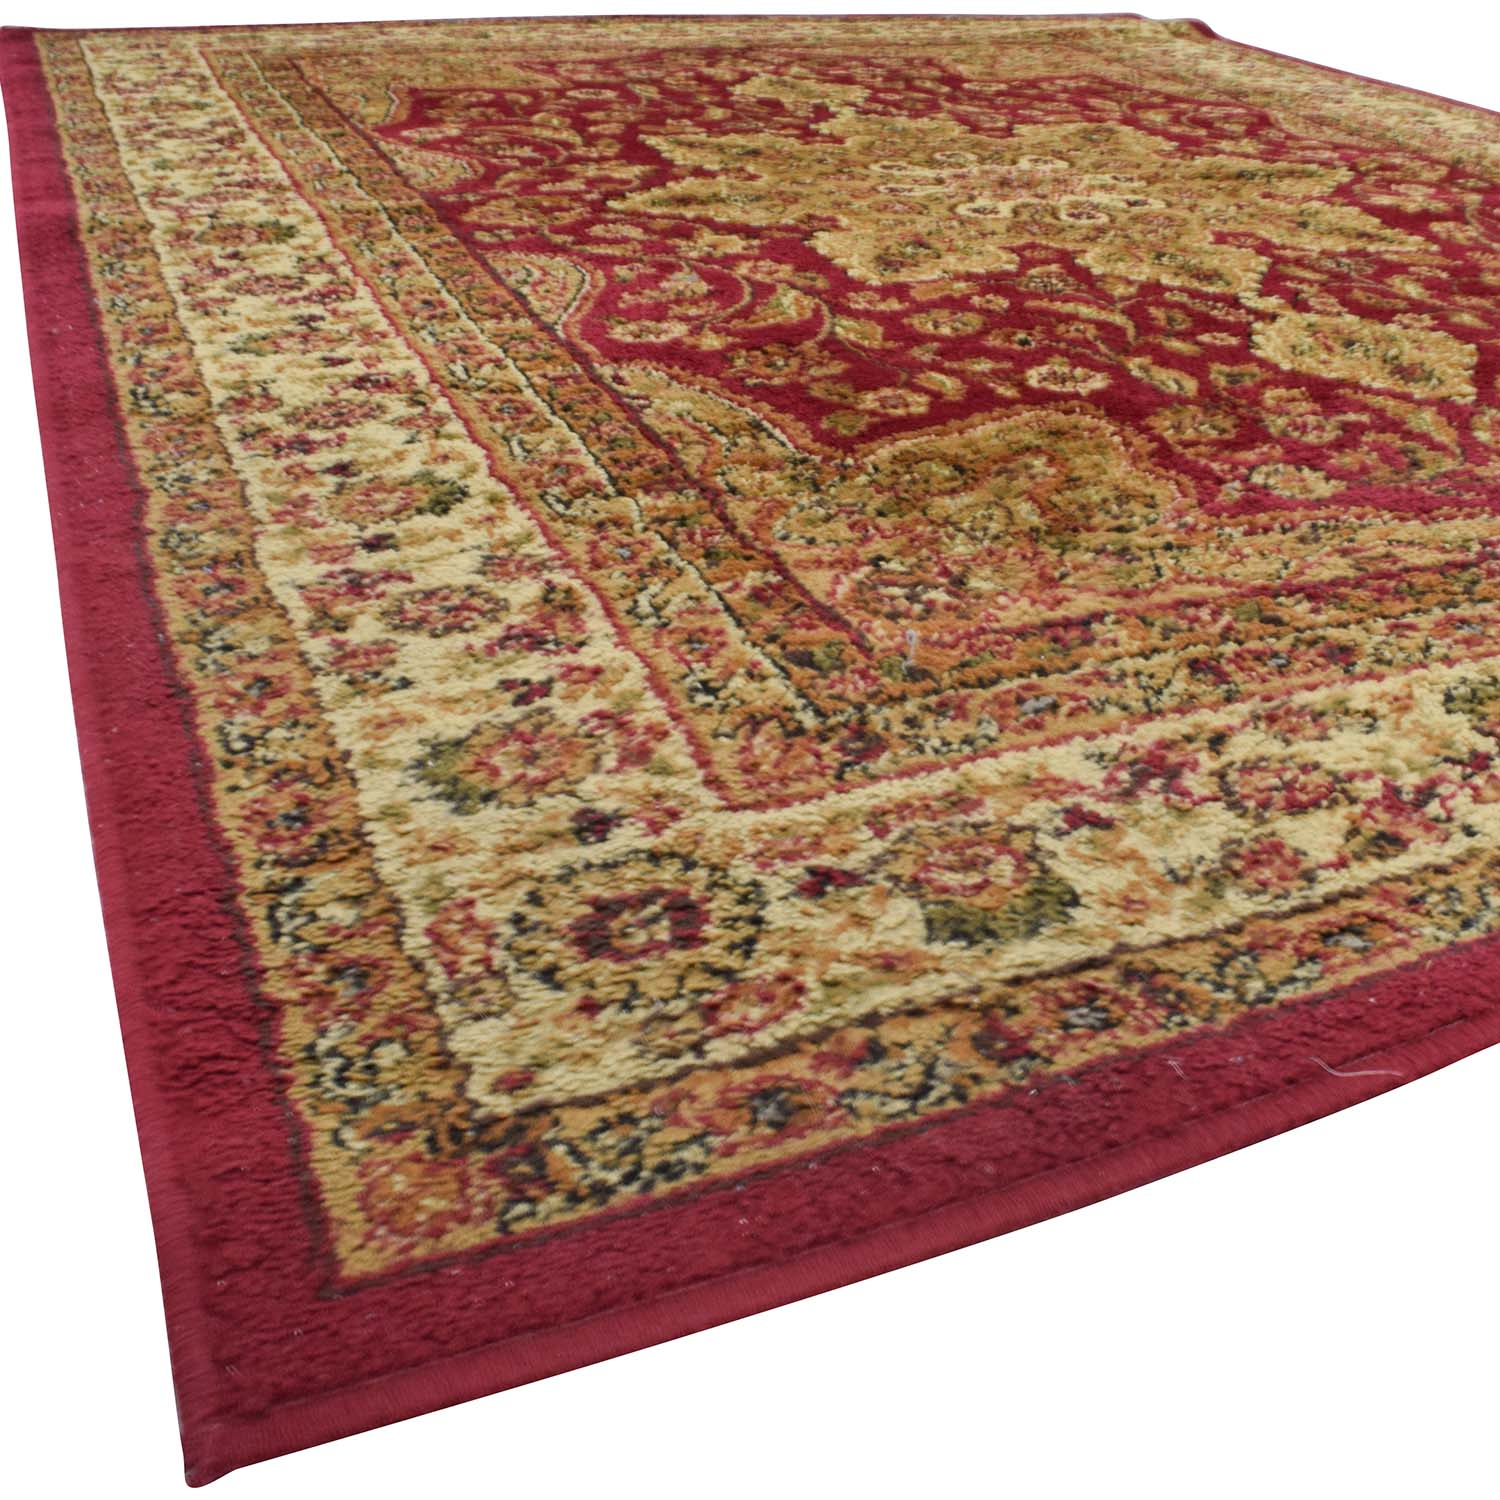 Home Dynamix Home Dynamix Royalty Red Persian Rug nyc